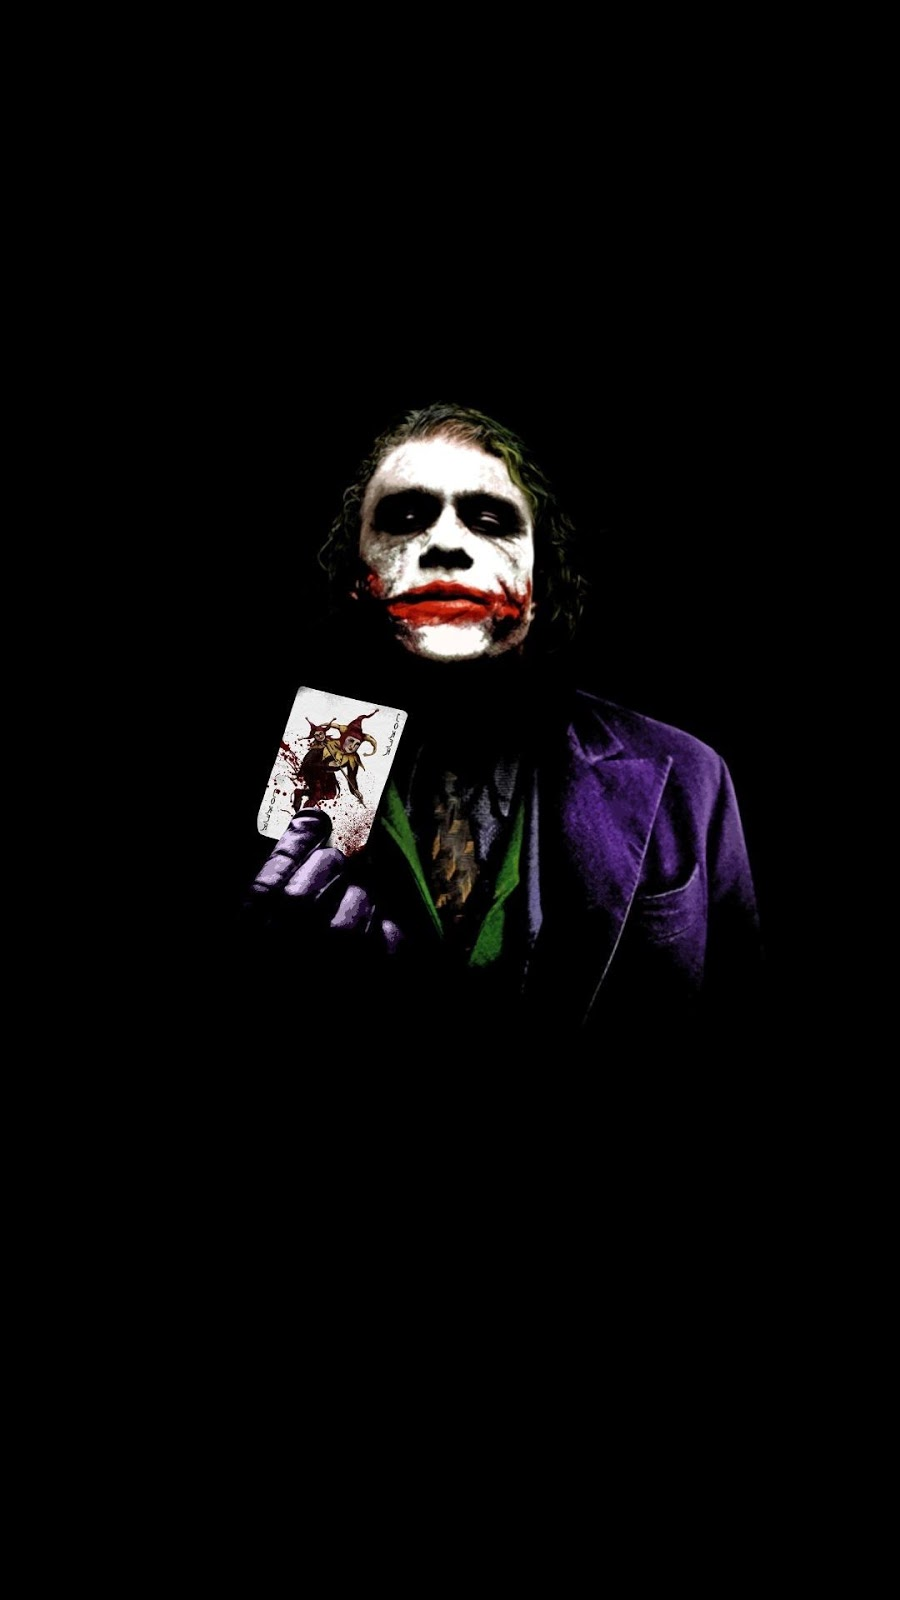 The-best-joker-wallpaper